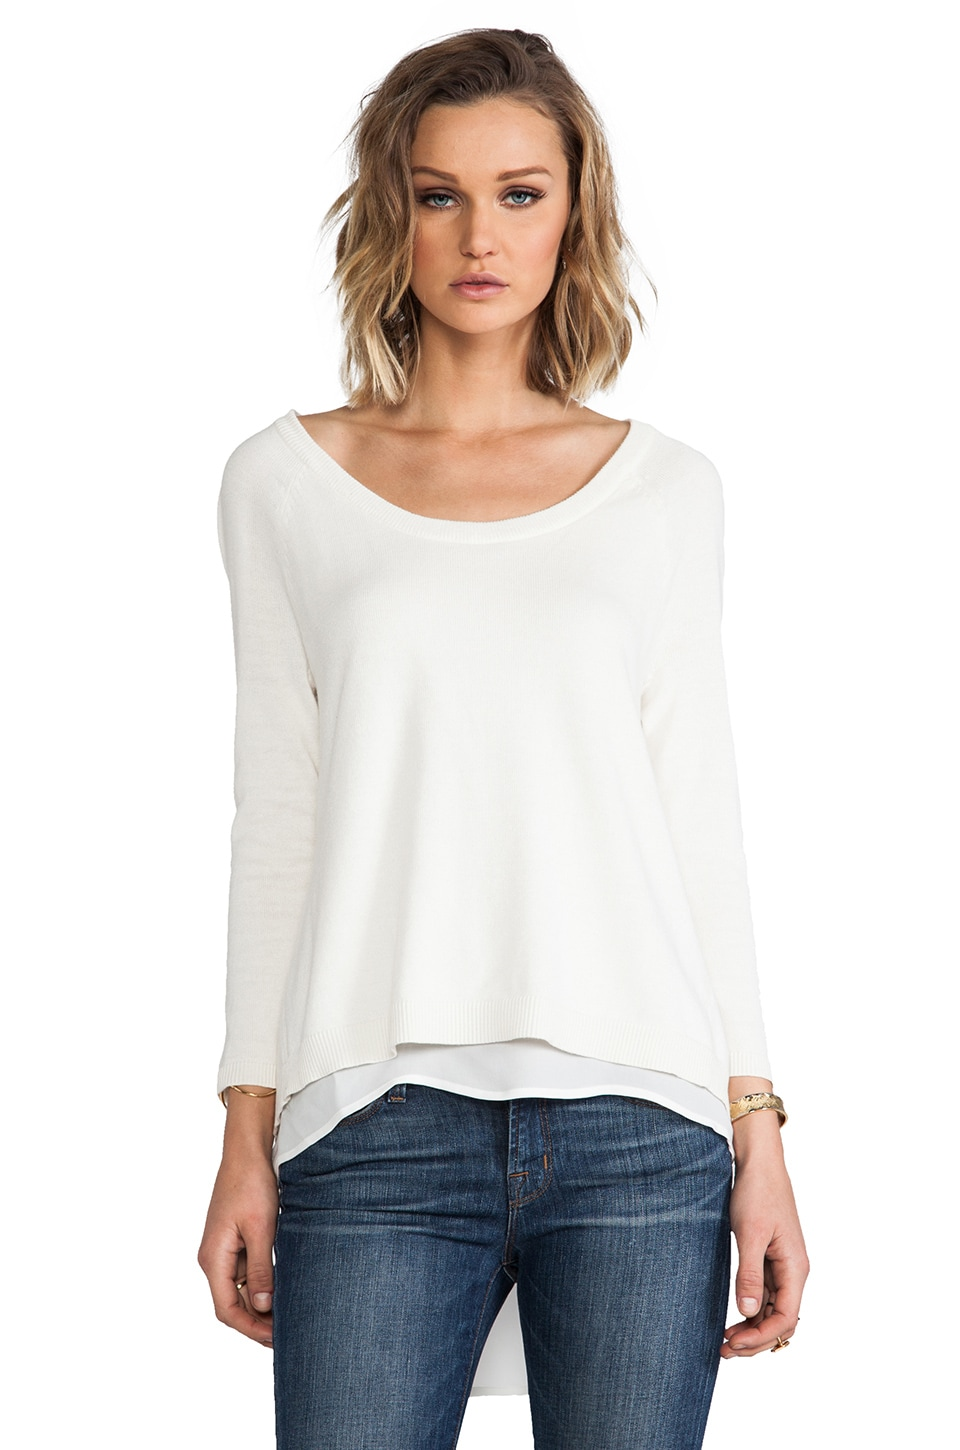 Central Park West Chile Sheer Back Sweater in Ivory